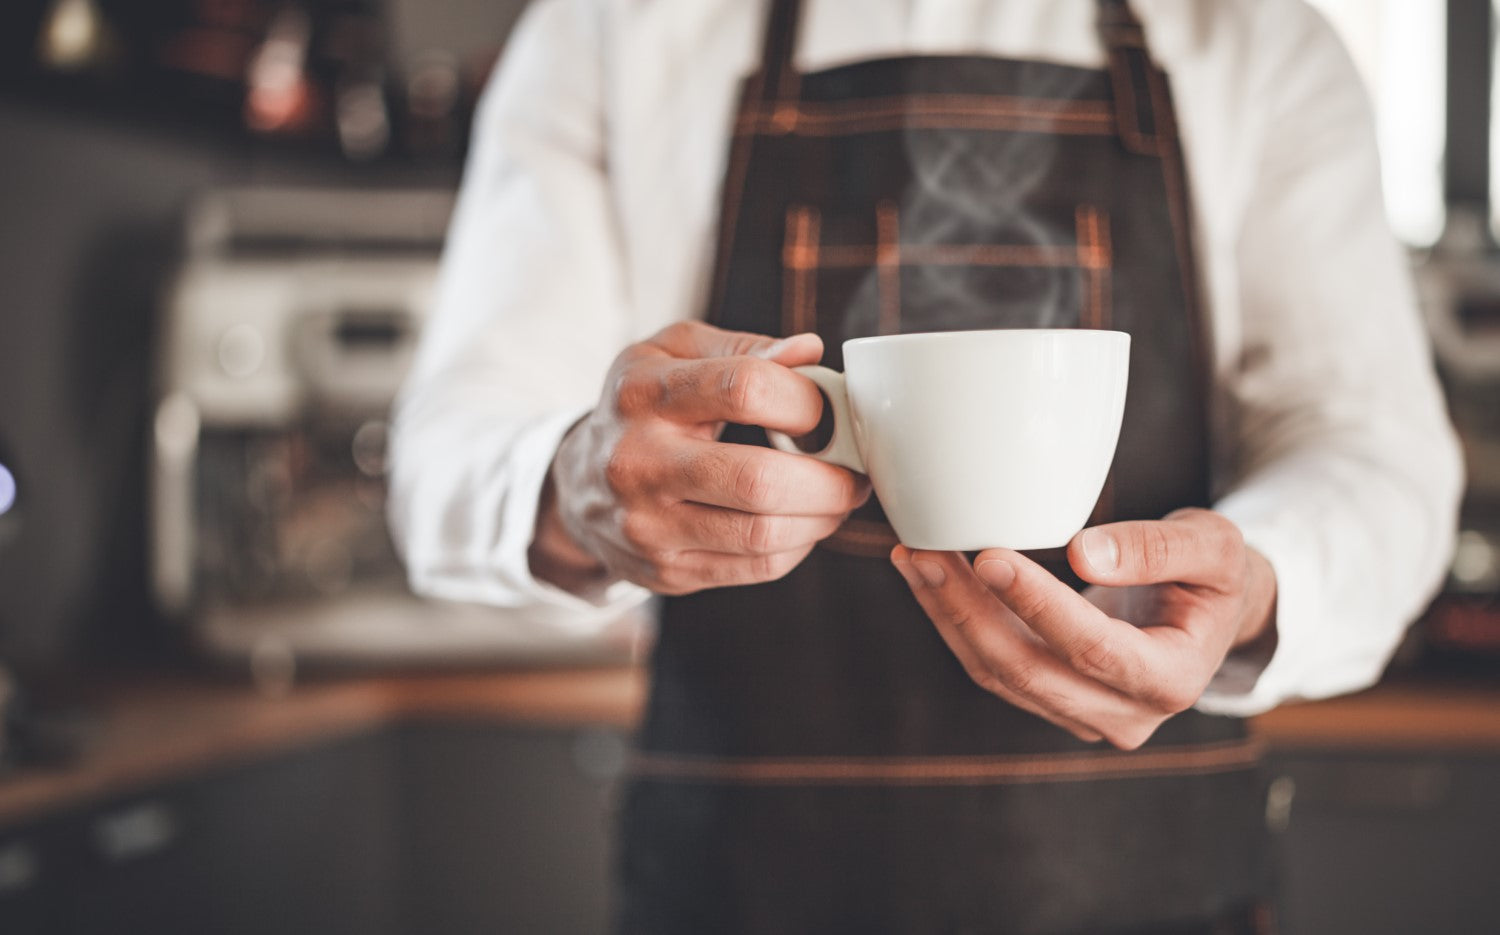 serving a hot coffee